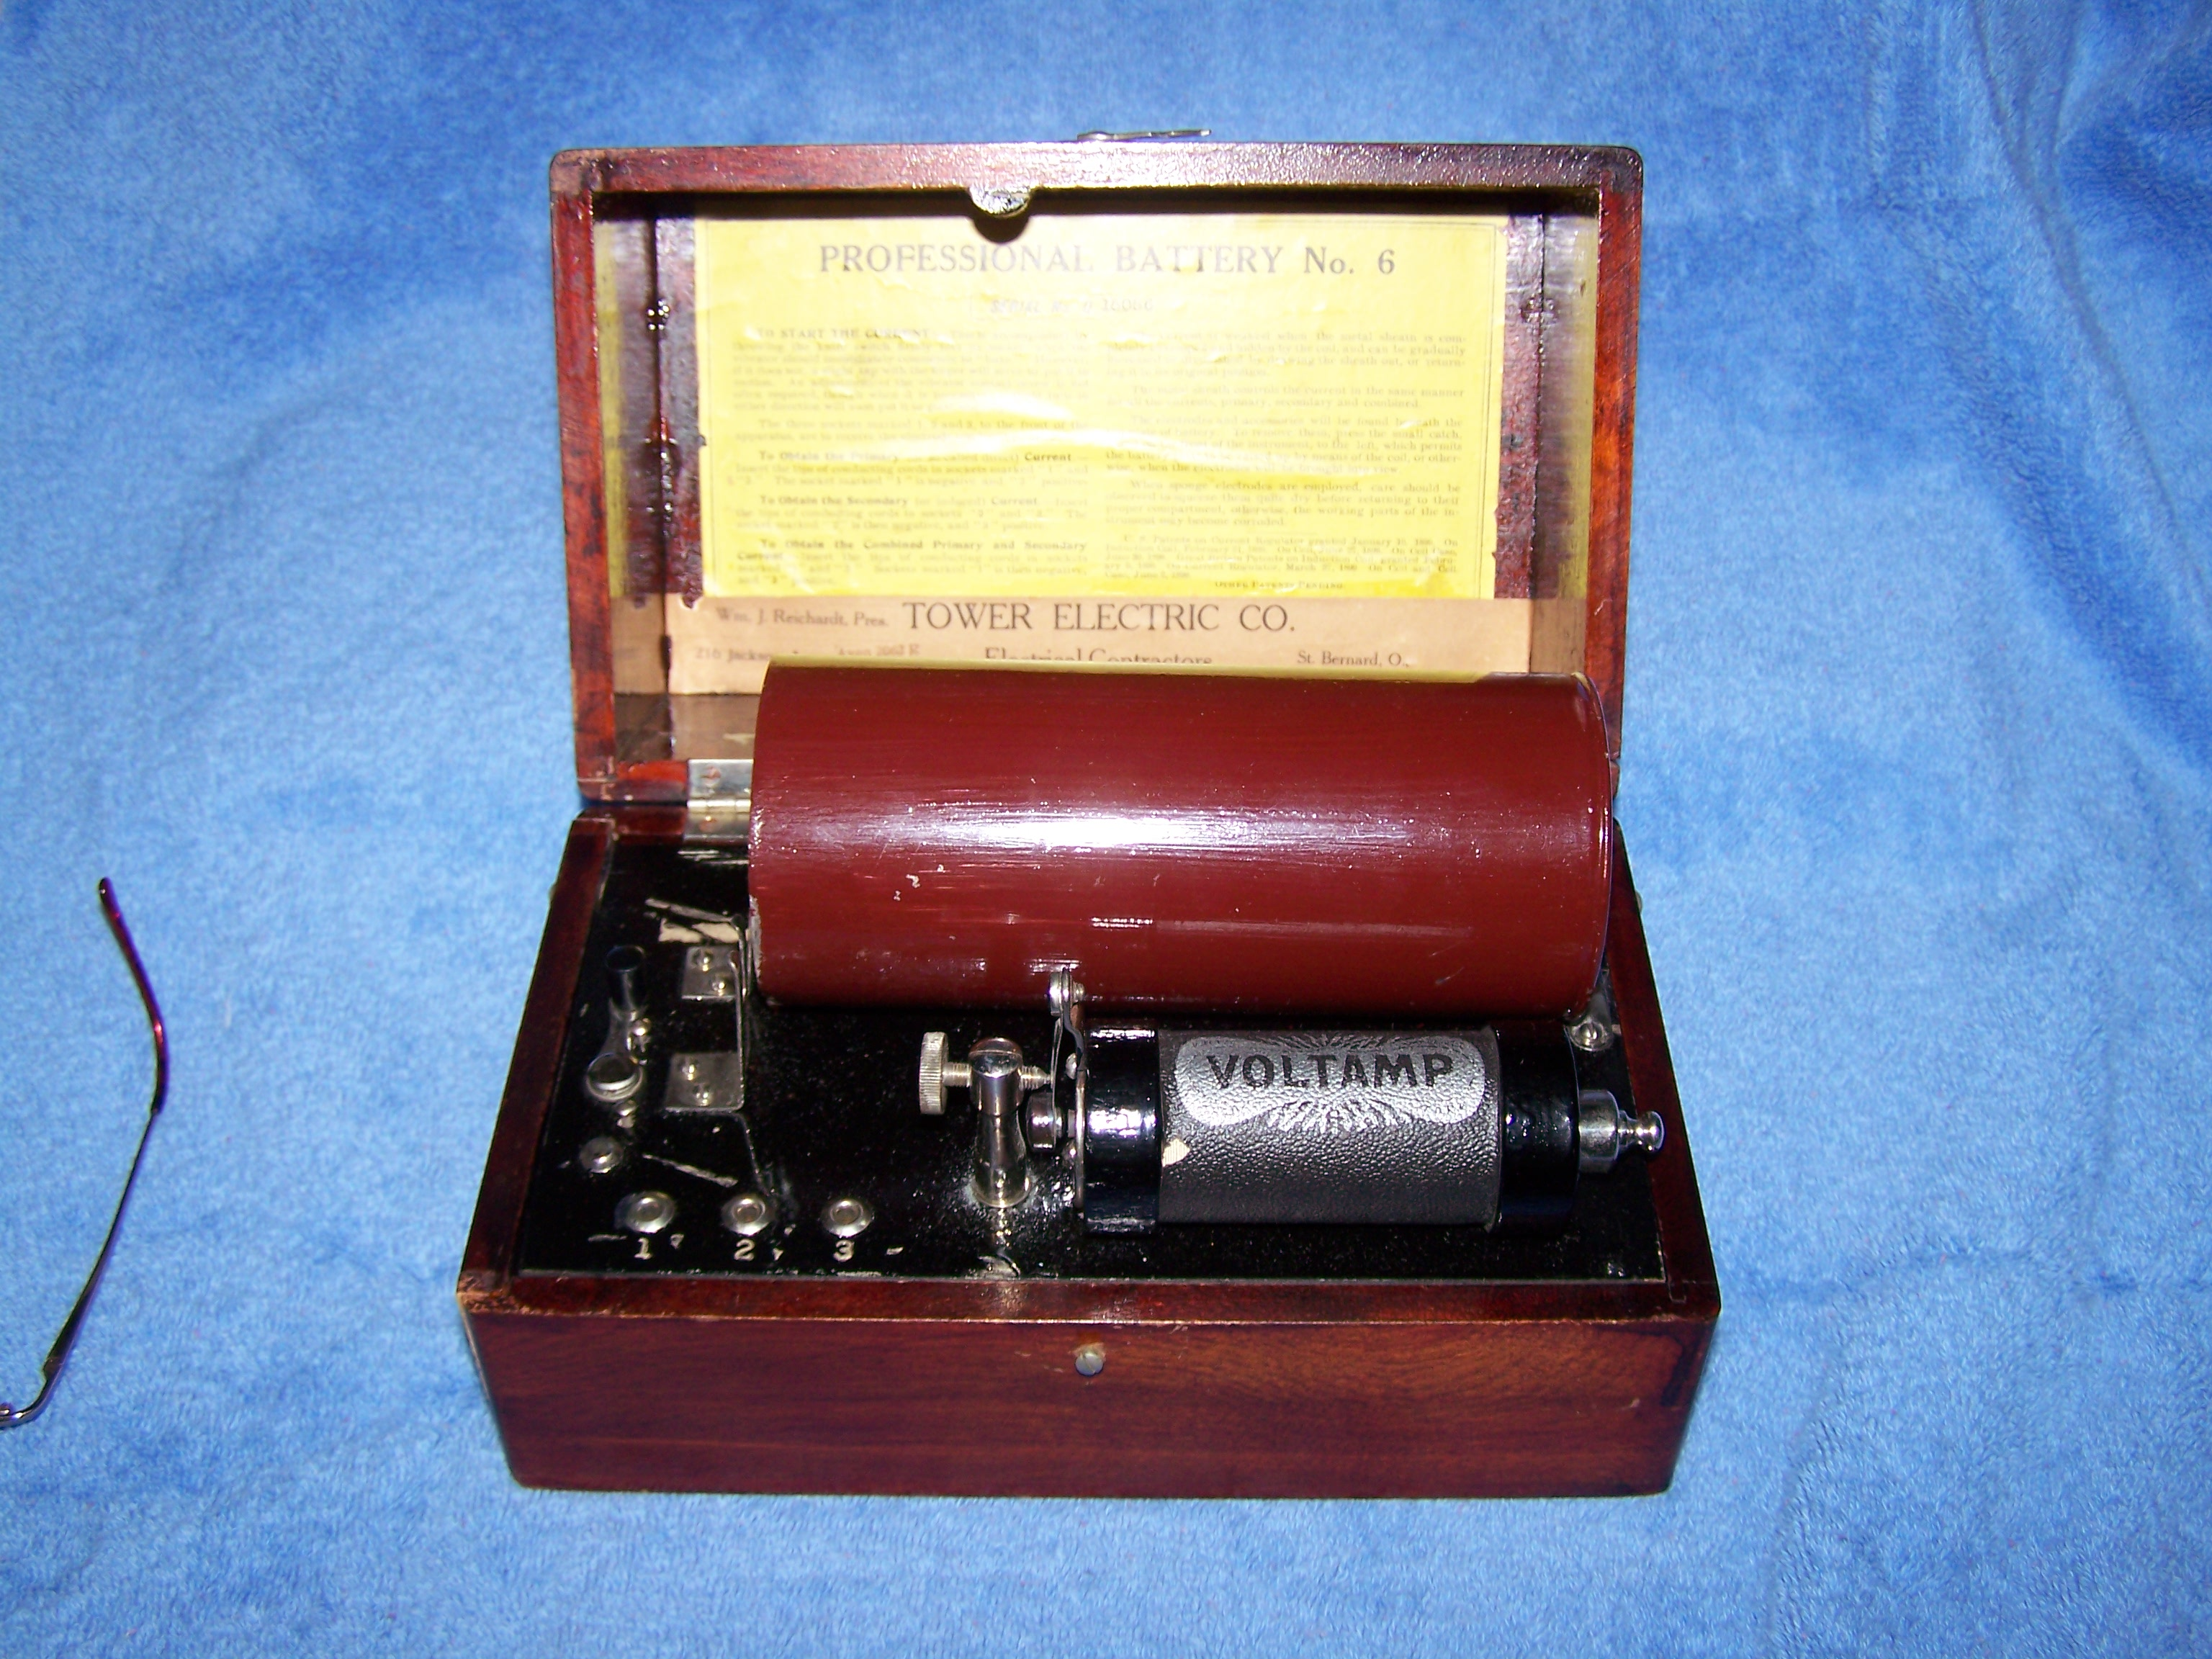 Voltamp Professional Battery No. 6